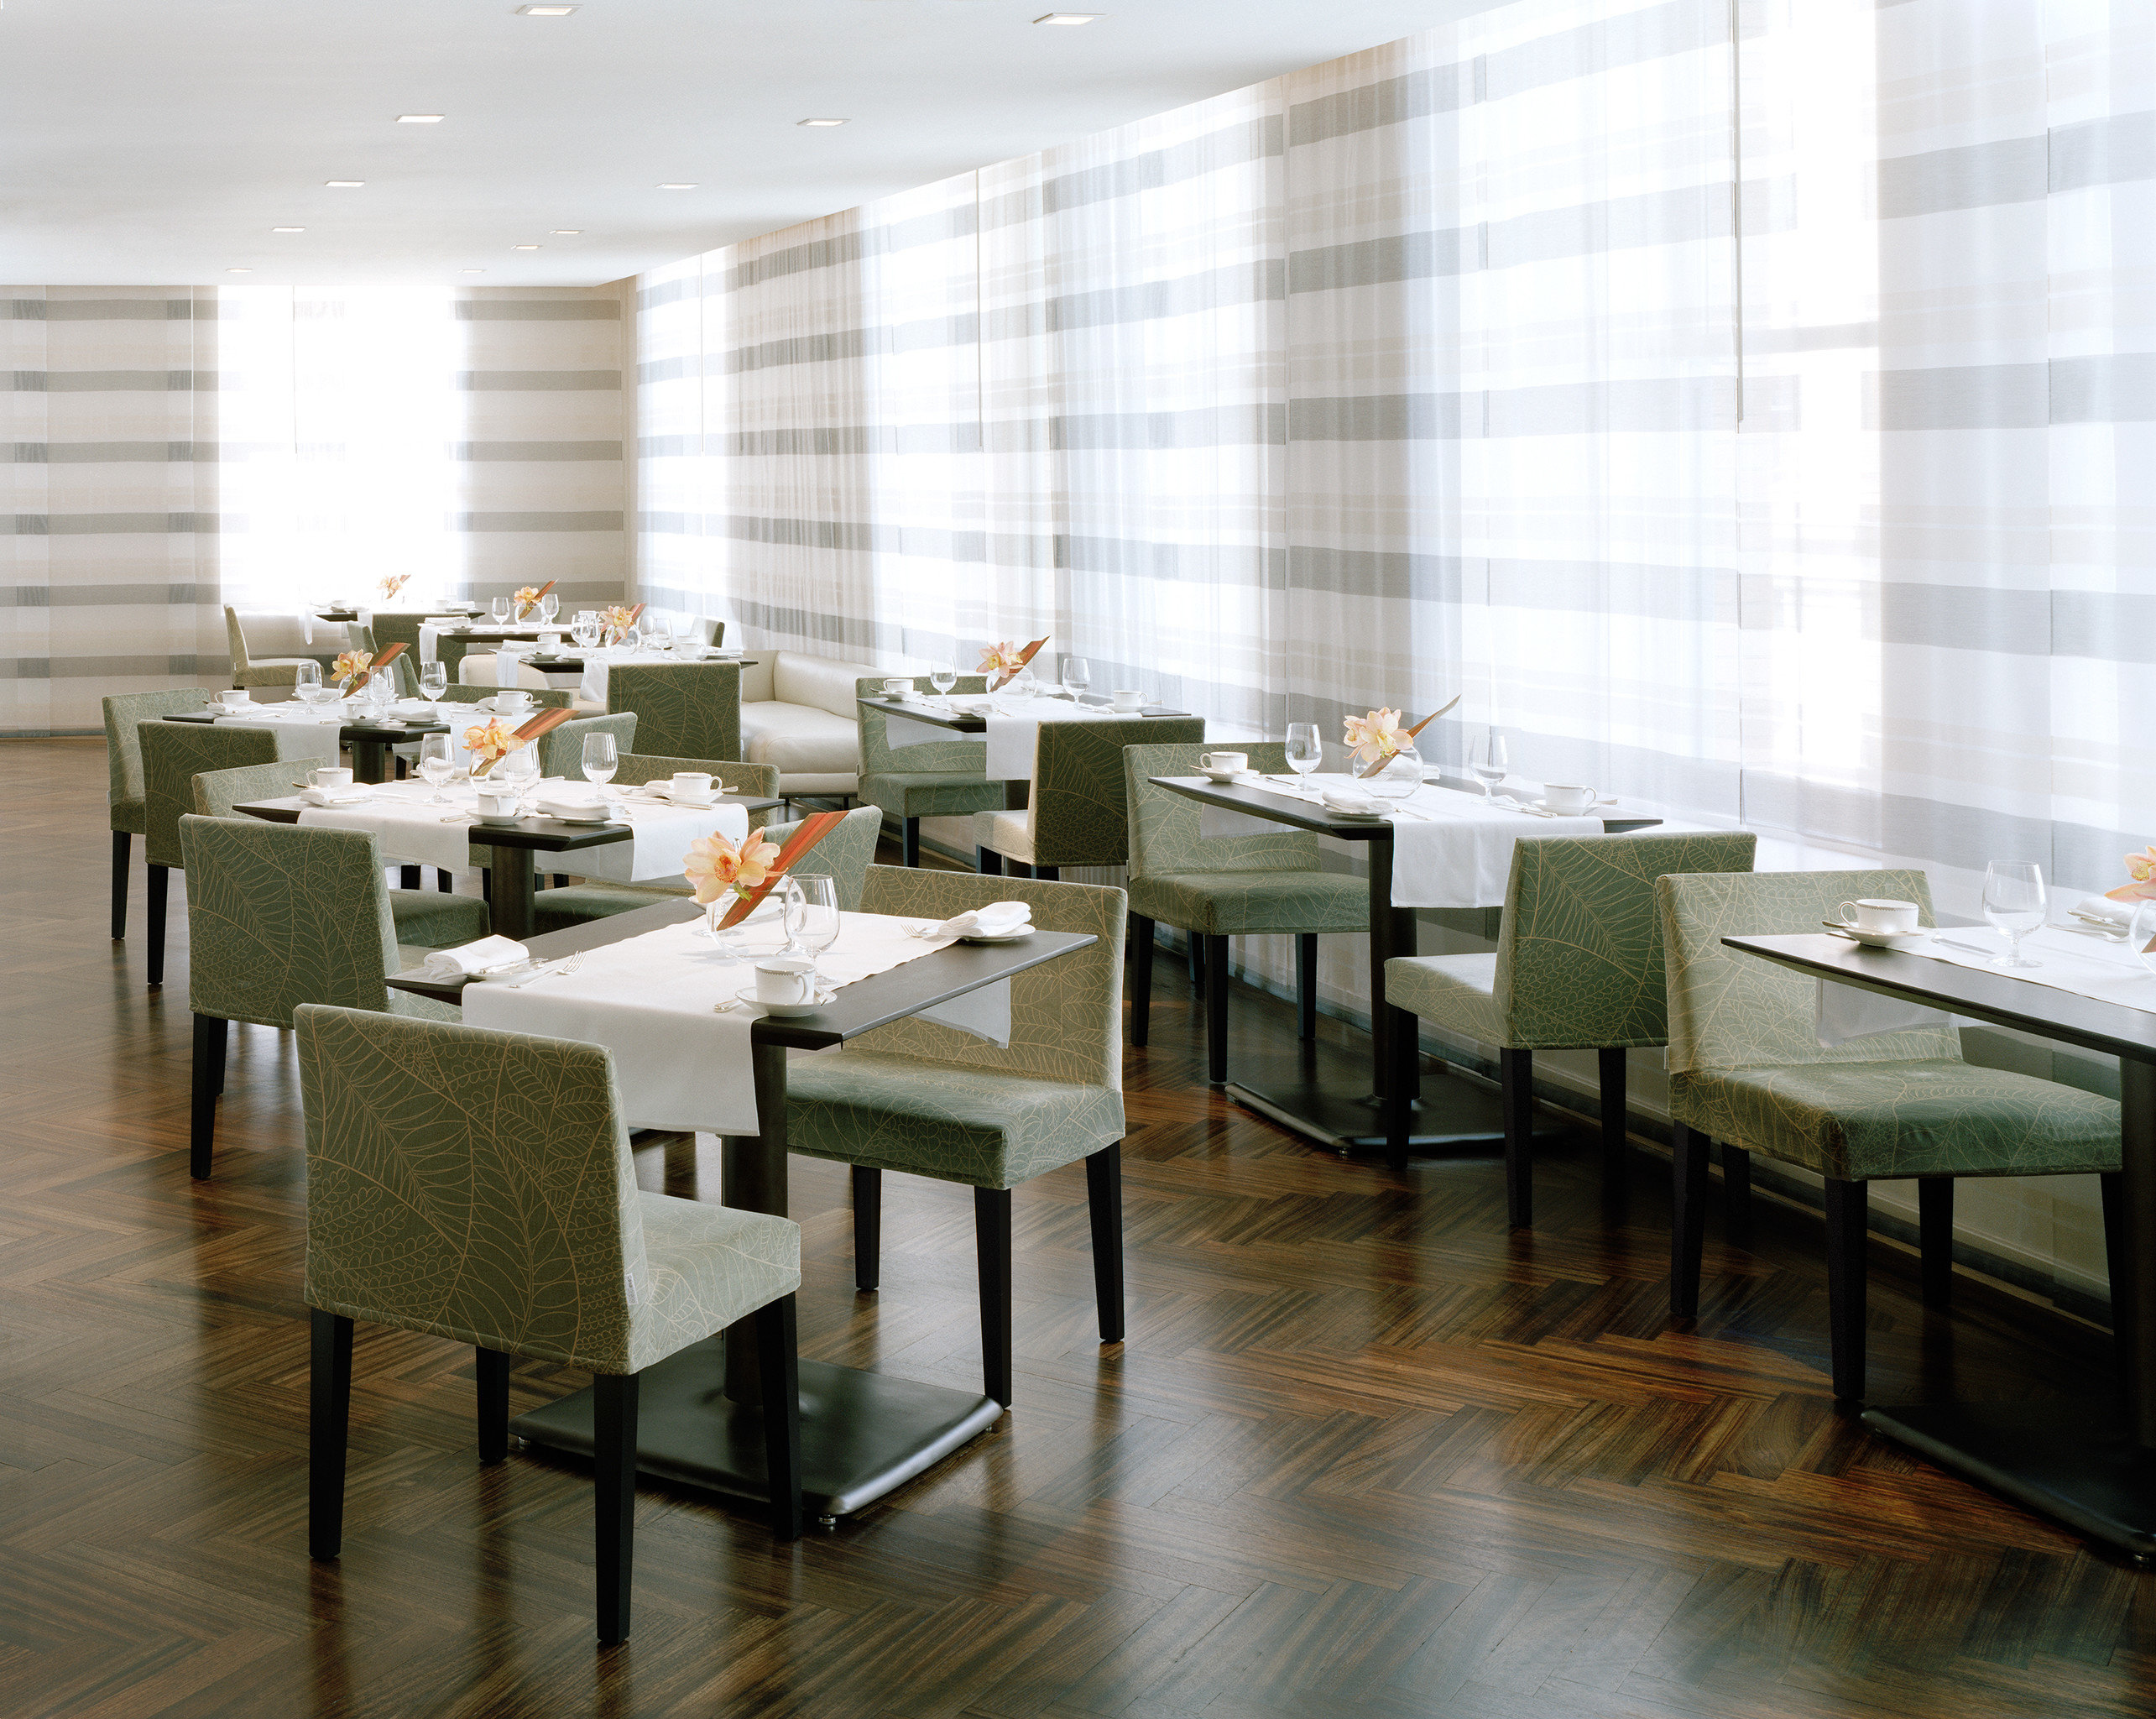 Dining Drink Eat Elegant Lounge Modern restaurant conference hall cafeteria headquarters office flooring